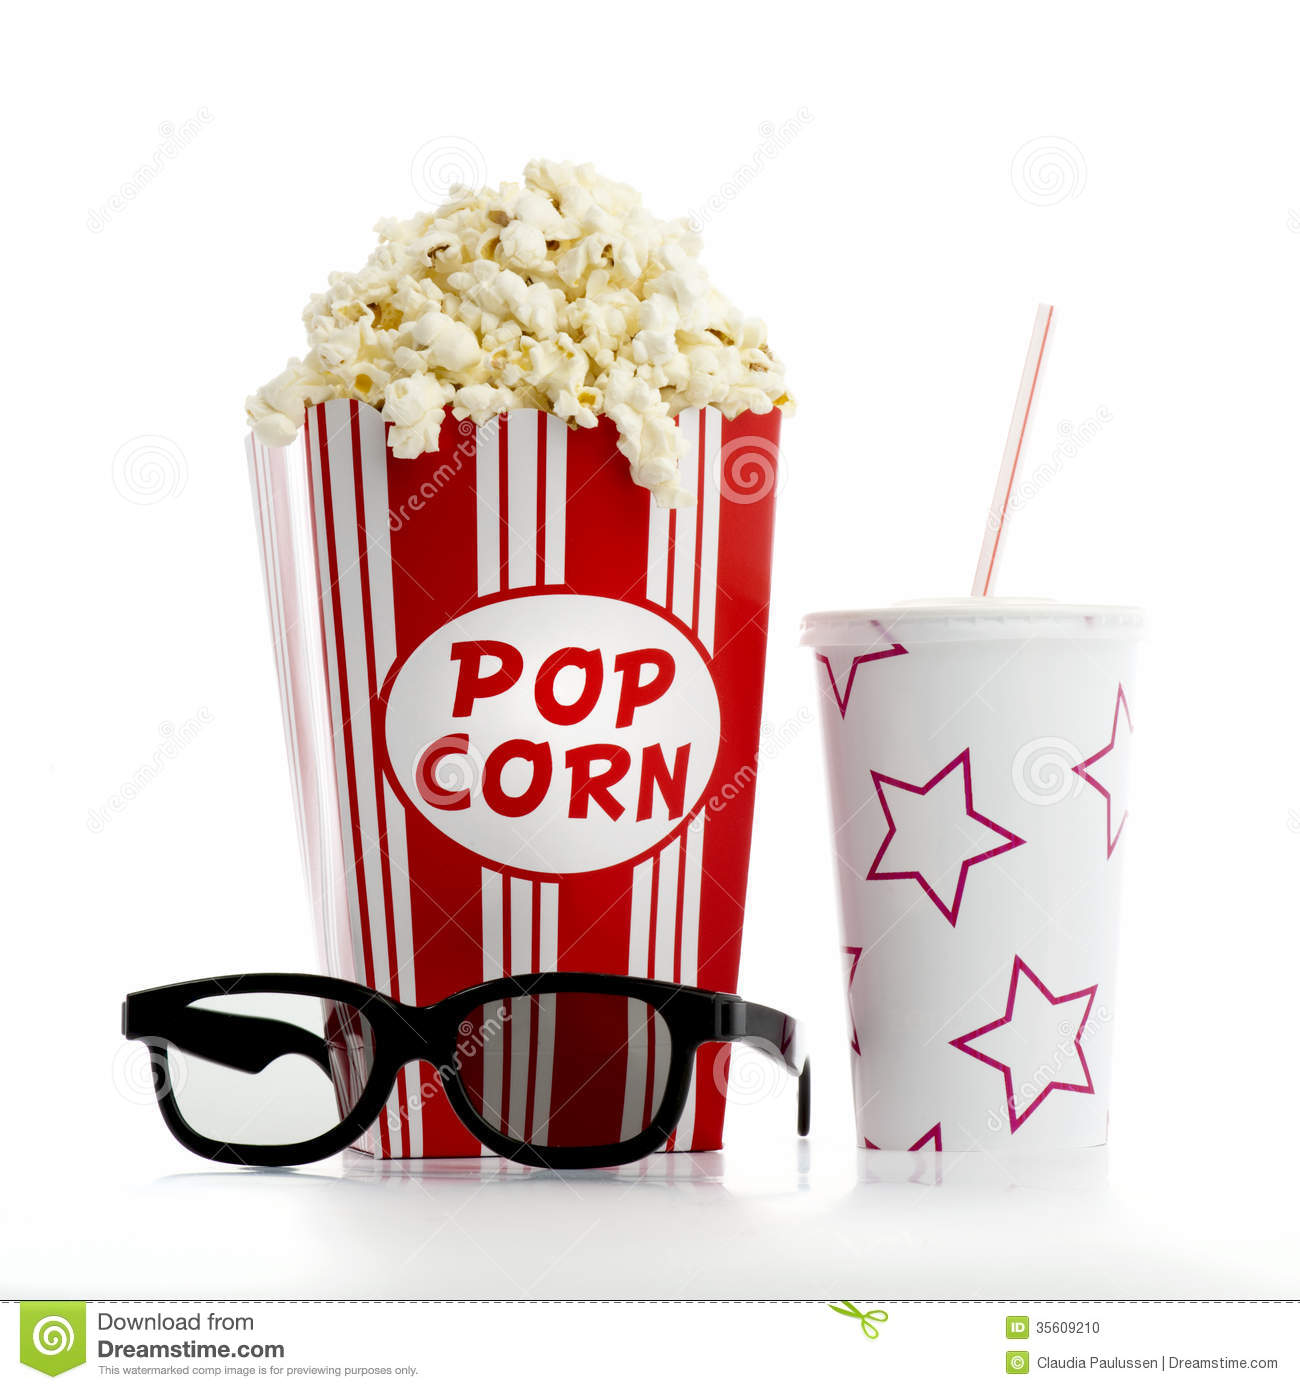 Snack clipart image popcorn and a soda pop drink image #18894